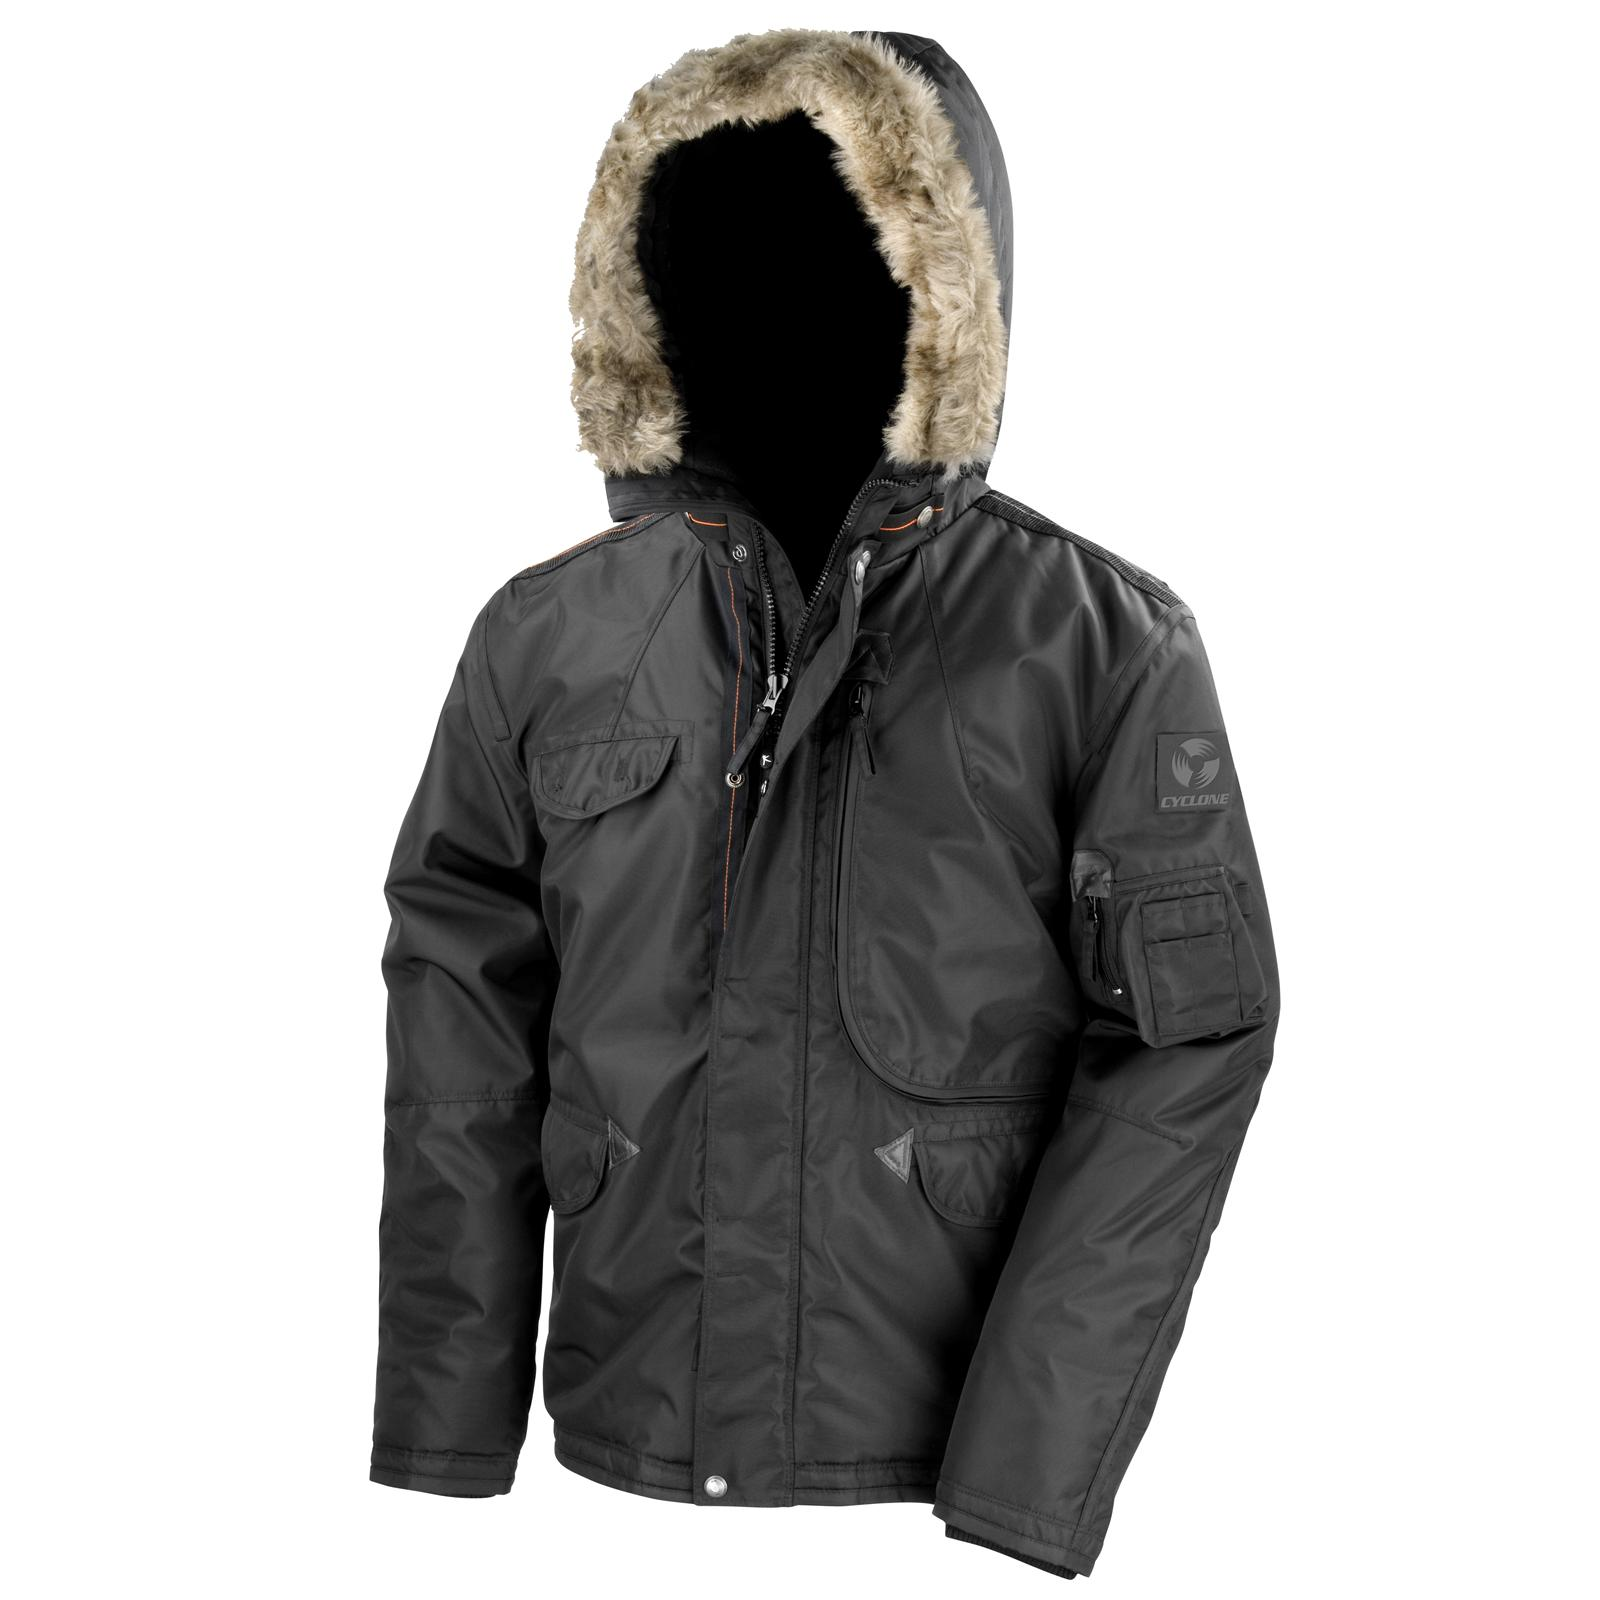 New RESULT Mens Urban Outdoor Warm Ultimate Cyclone Parka Jacket ...